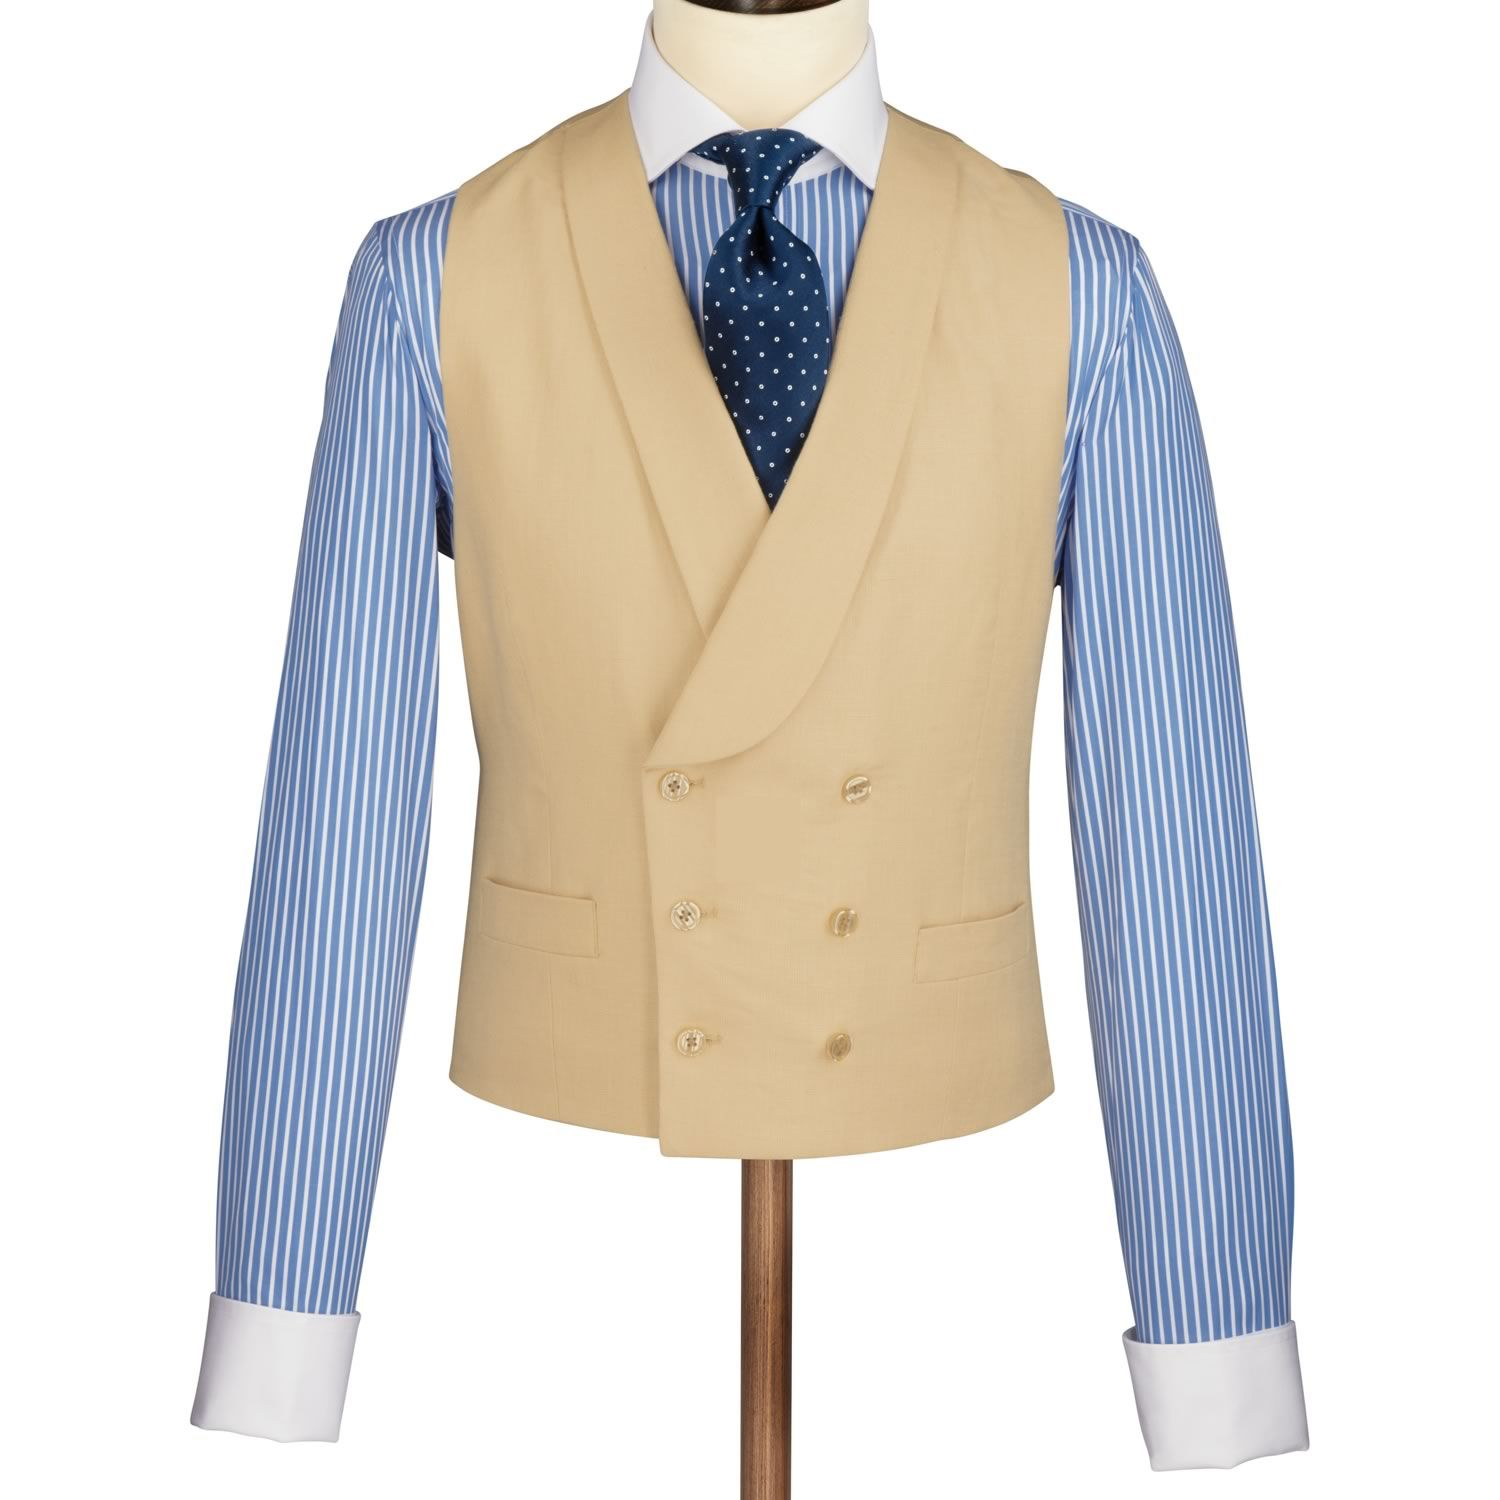 Buff linen Morning suit waistcoat | Men's occasion suits ...